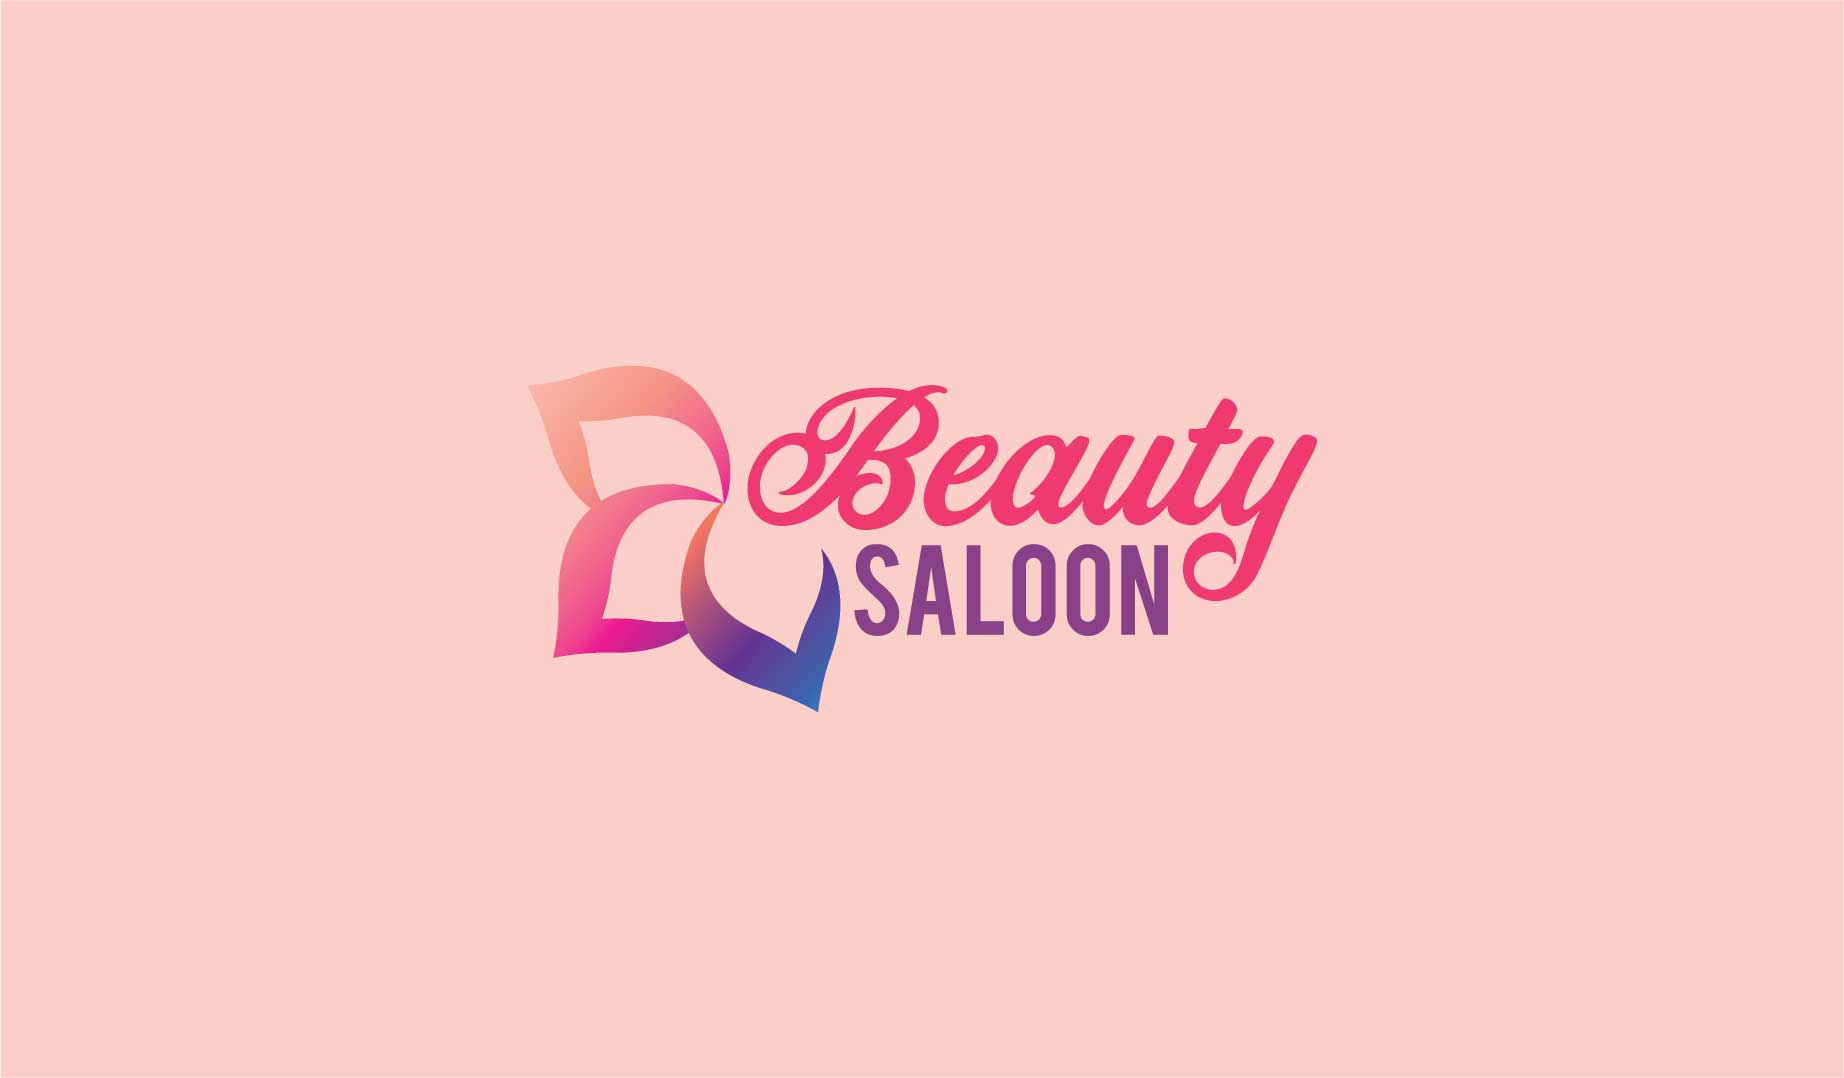 logo design service for Beauty Saloon